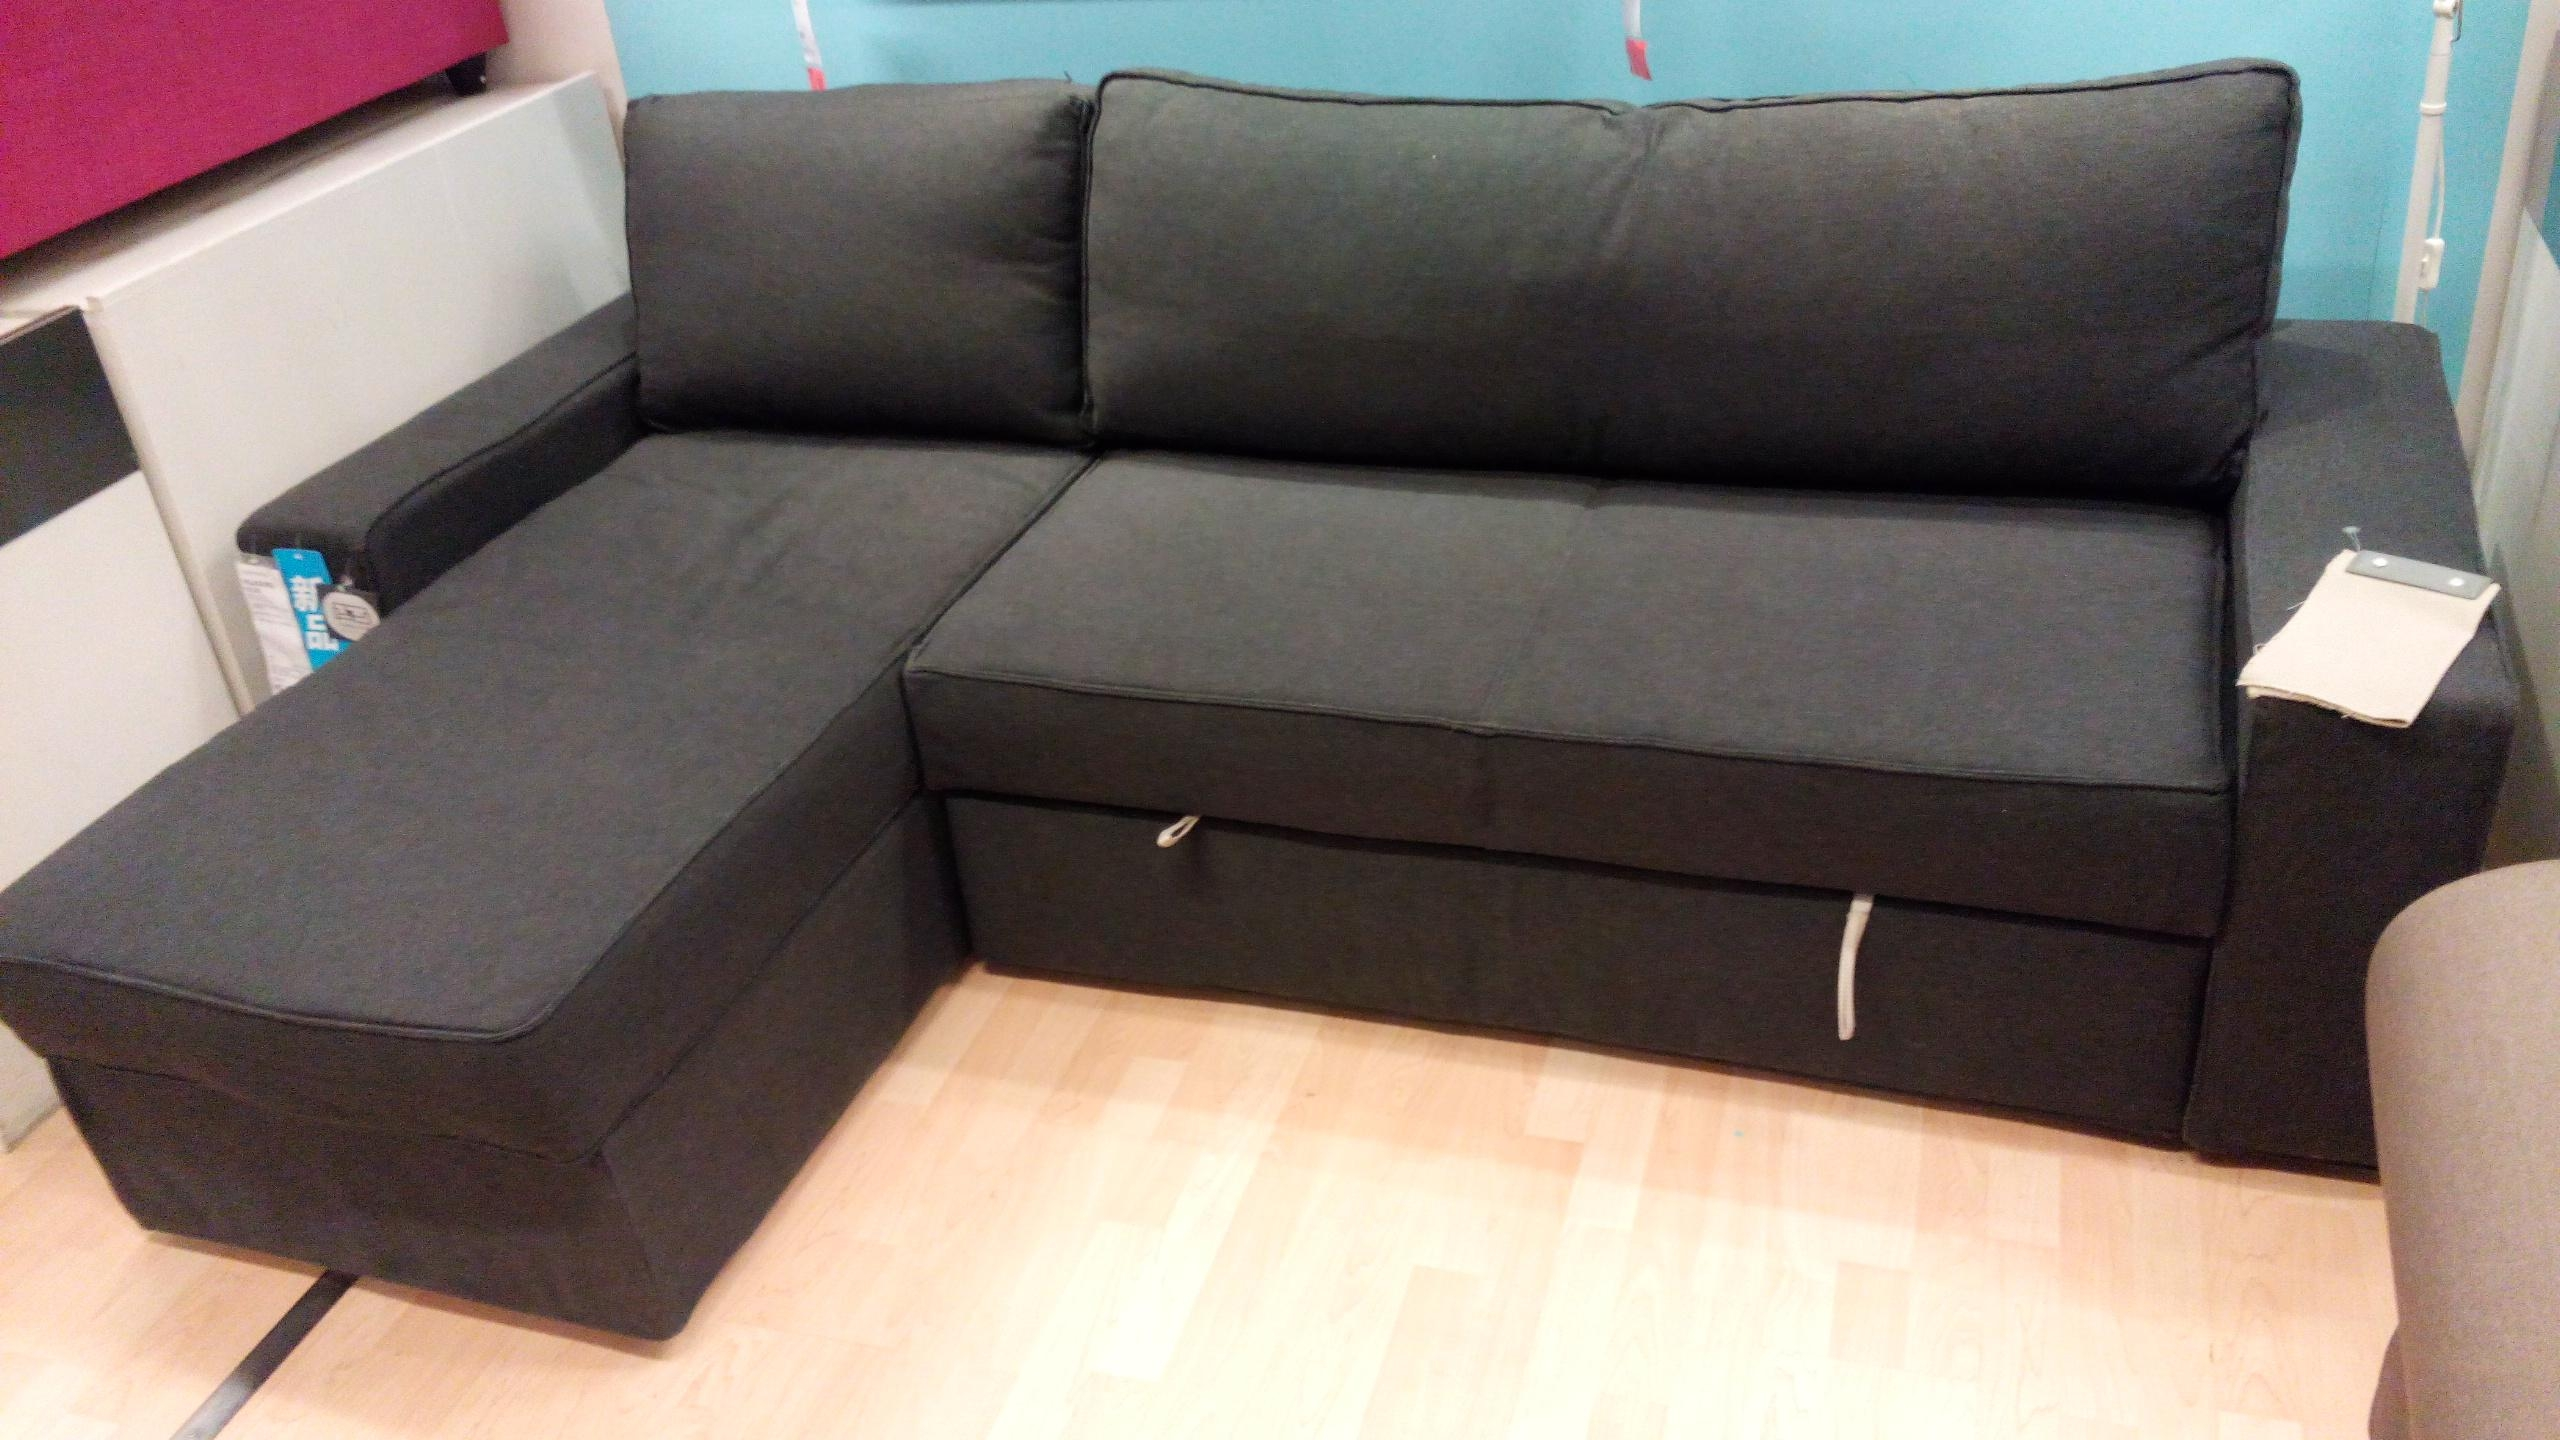 Ikea Vilasund And Backabro Review – Return Of The Sofa Bed Clones! Pertaining To Manstad Sofa Bed Ikea (View 10 of 20)